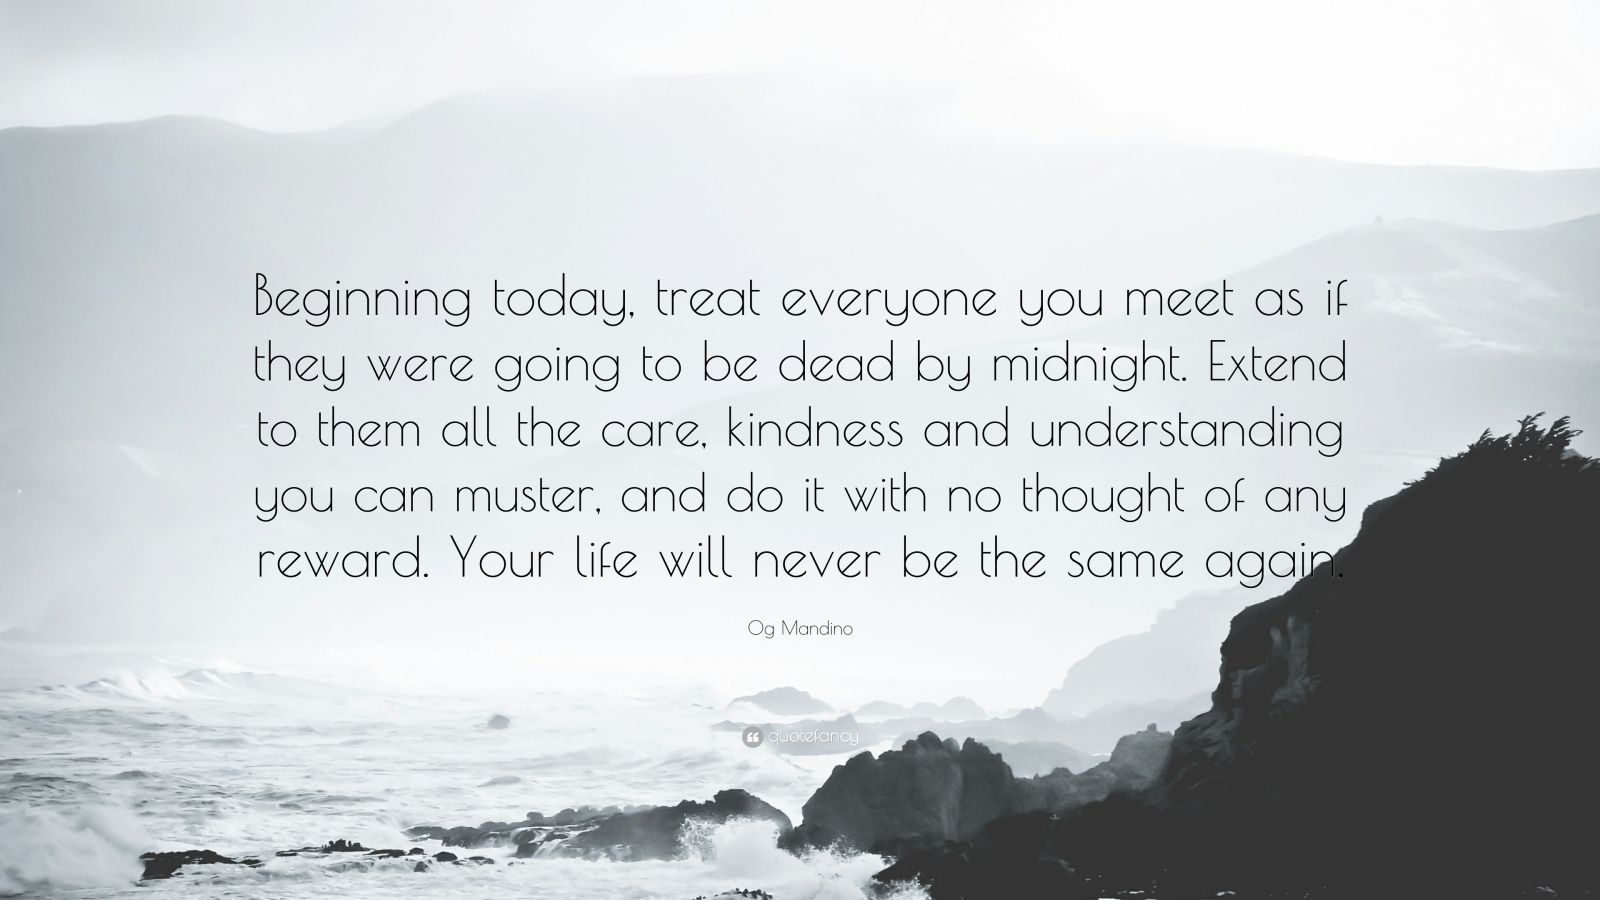 """Og Mandino Quote: """"Beginning today, treat everyone you meet as if they were going to be dead by midnight. Extend to them all the care, kindness and understanding you can muster, and do it with no thought of any reward. Your life will never be the same again."""""""